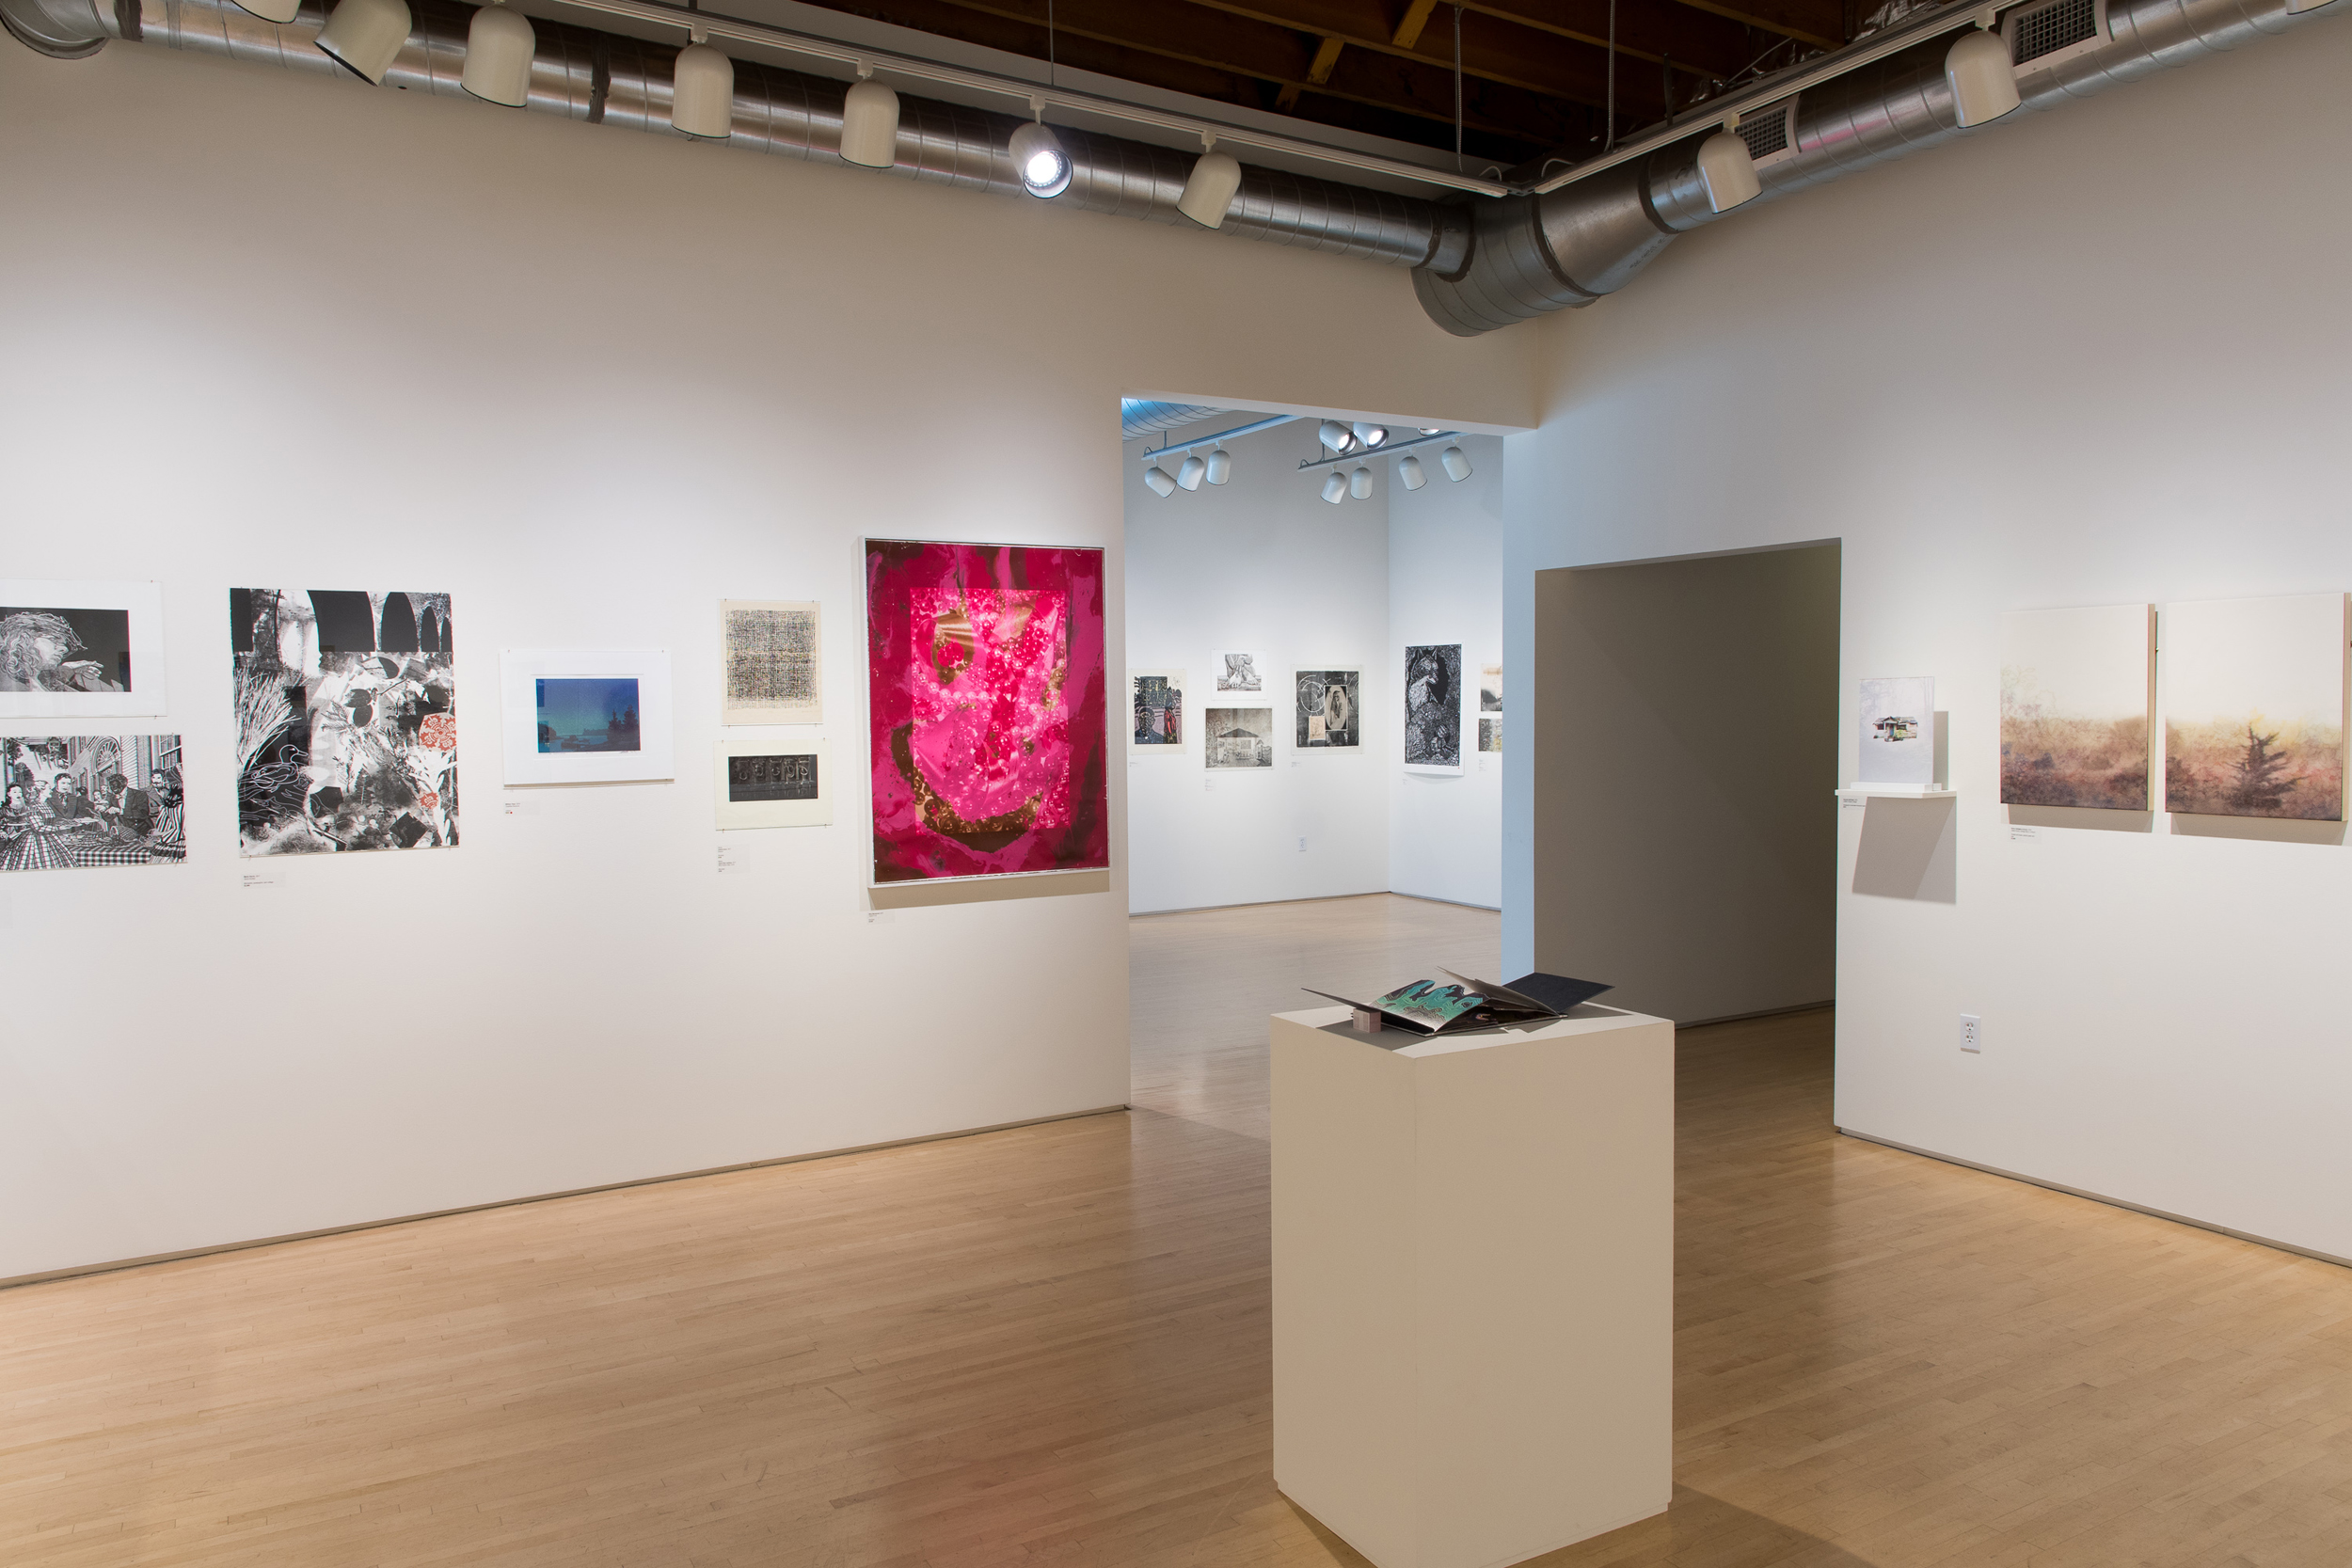 Highpoint PrintmakingStand Out Prints Exhibit180927a0377.JPG